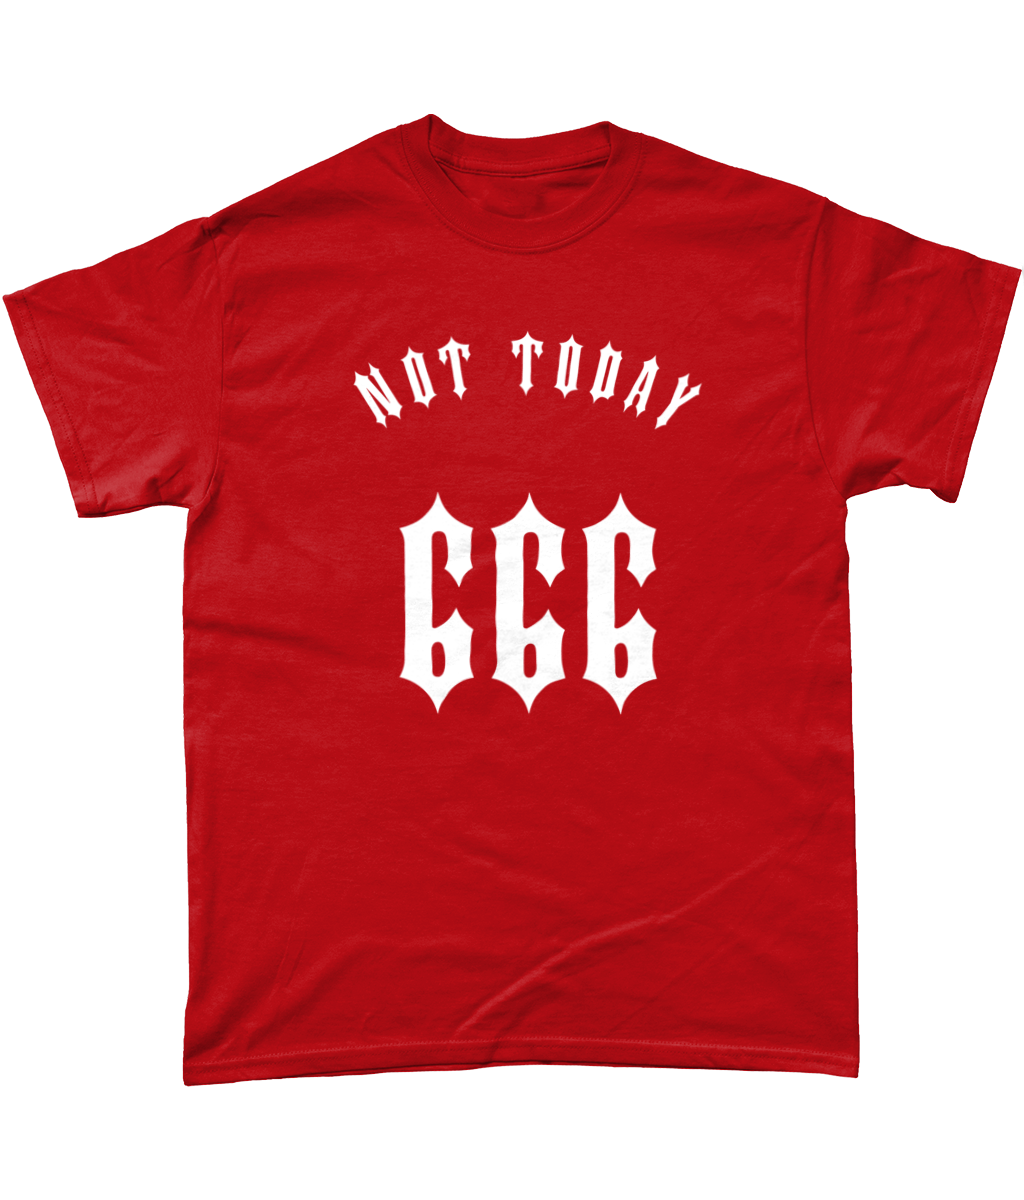 Not Today 666 - T-Shirt